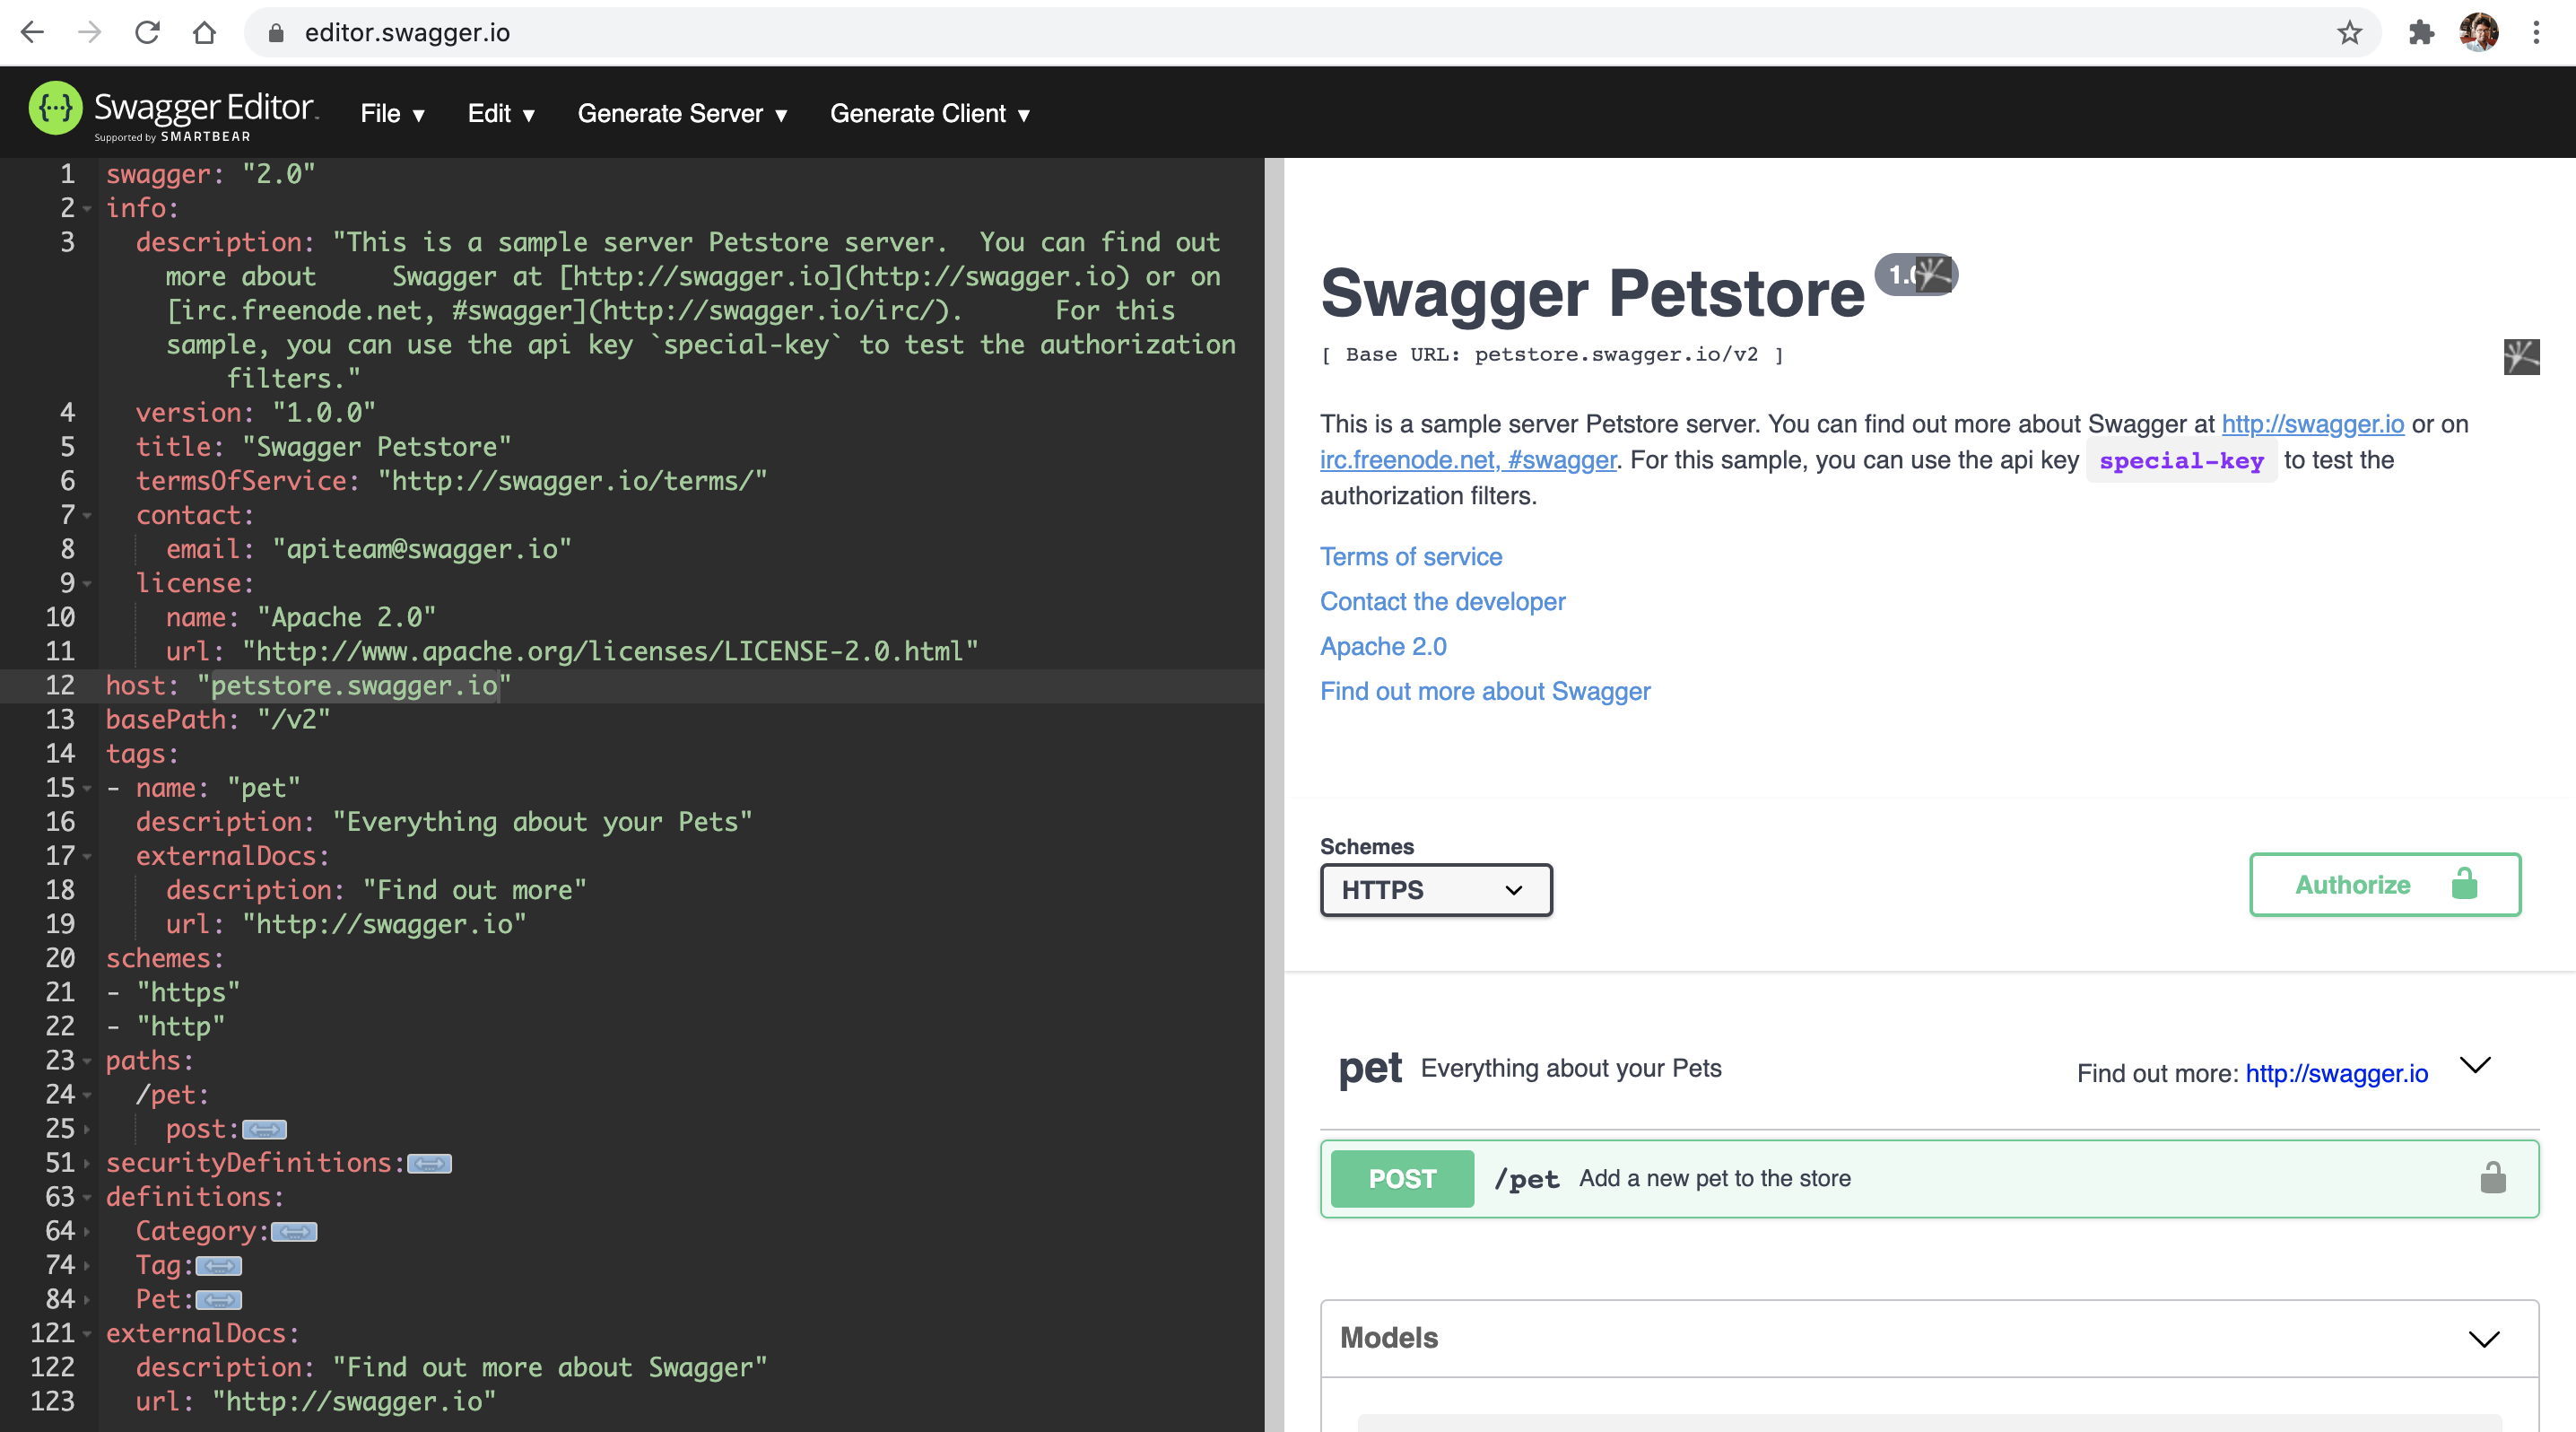 Swagger%20Editor%20for%20developing%20a%20Swagger